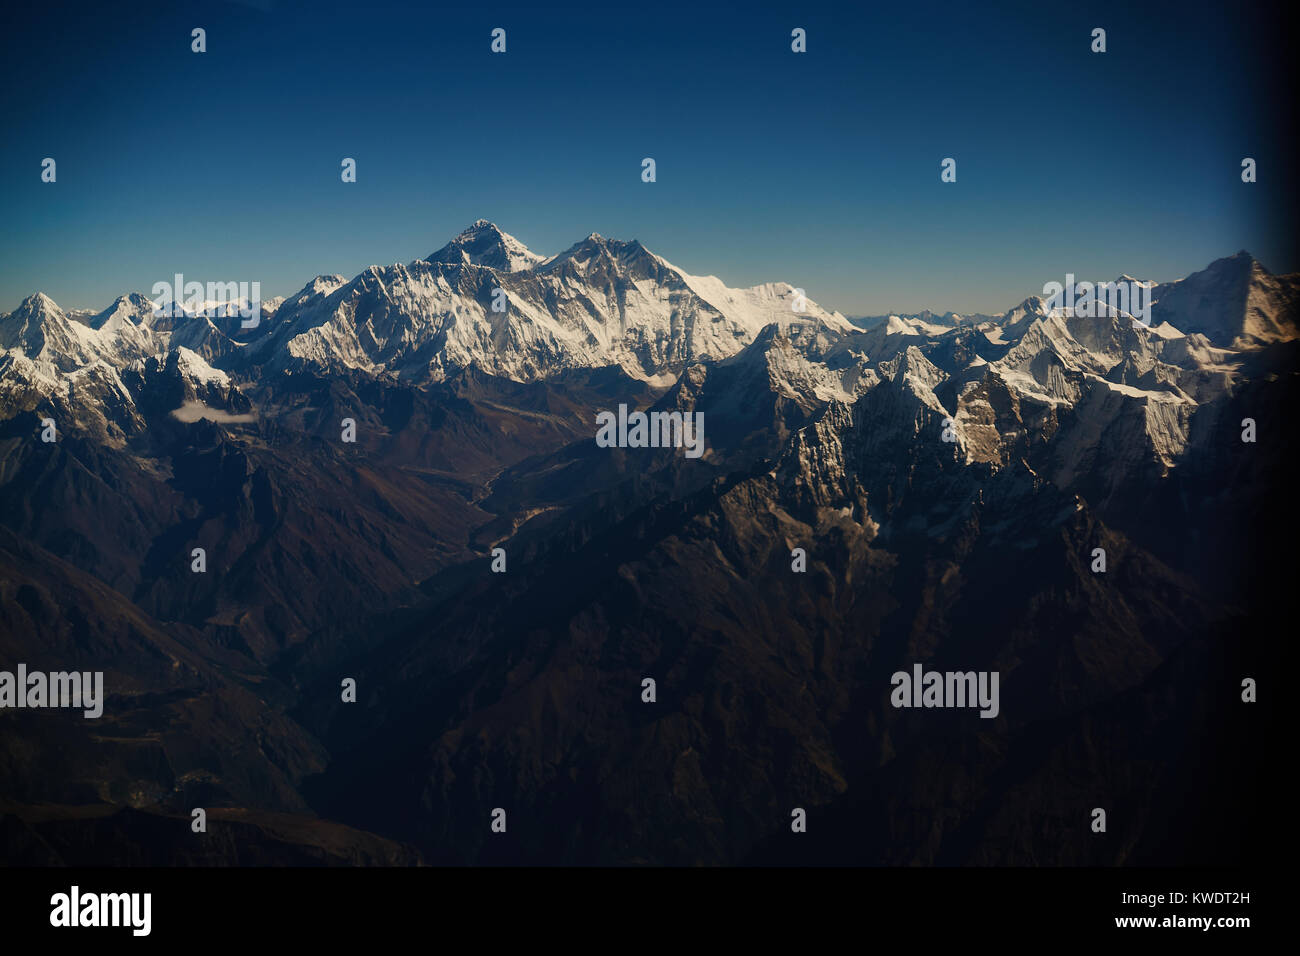 Everest view from plane, Nepal - Stock Image